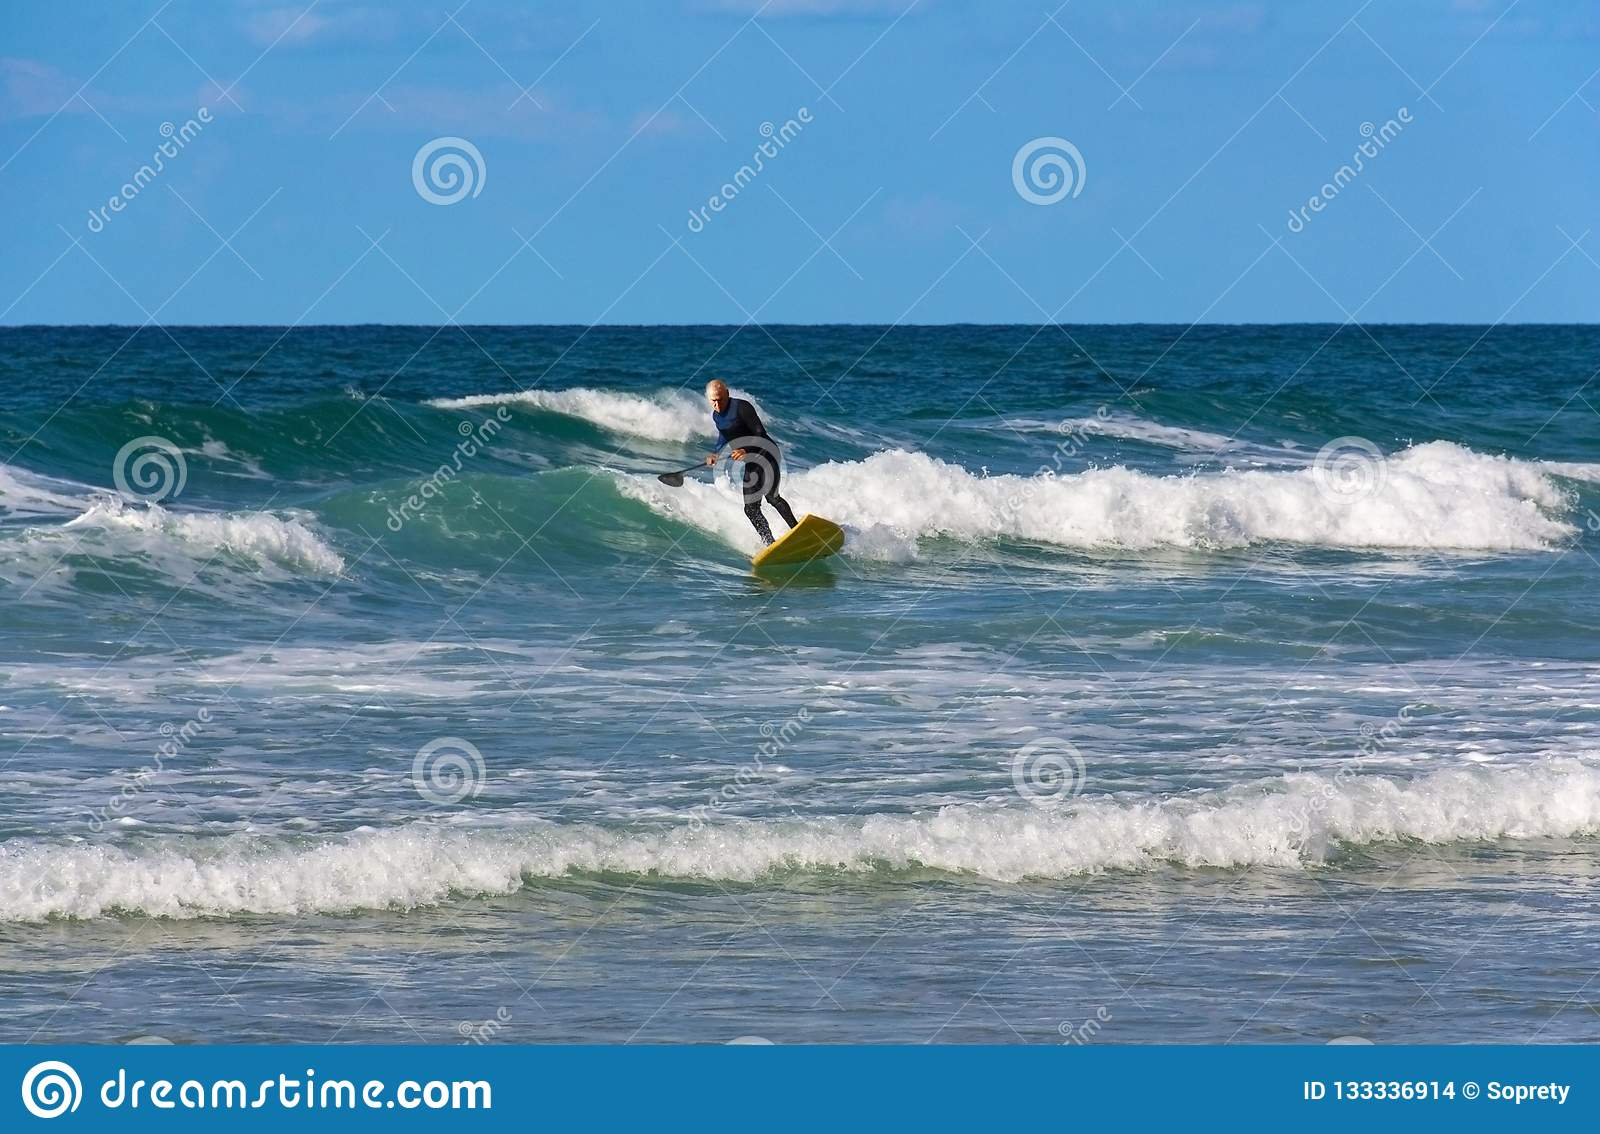 A surfer over the age of 60 slides on the waves